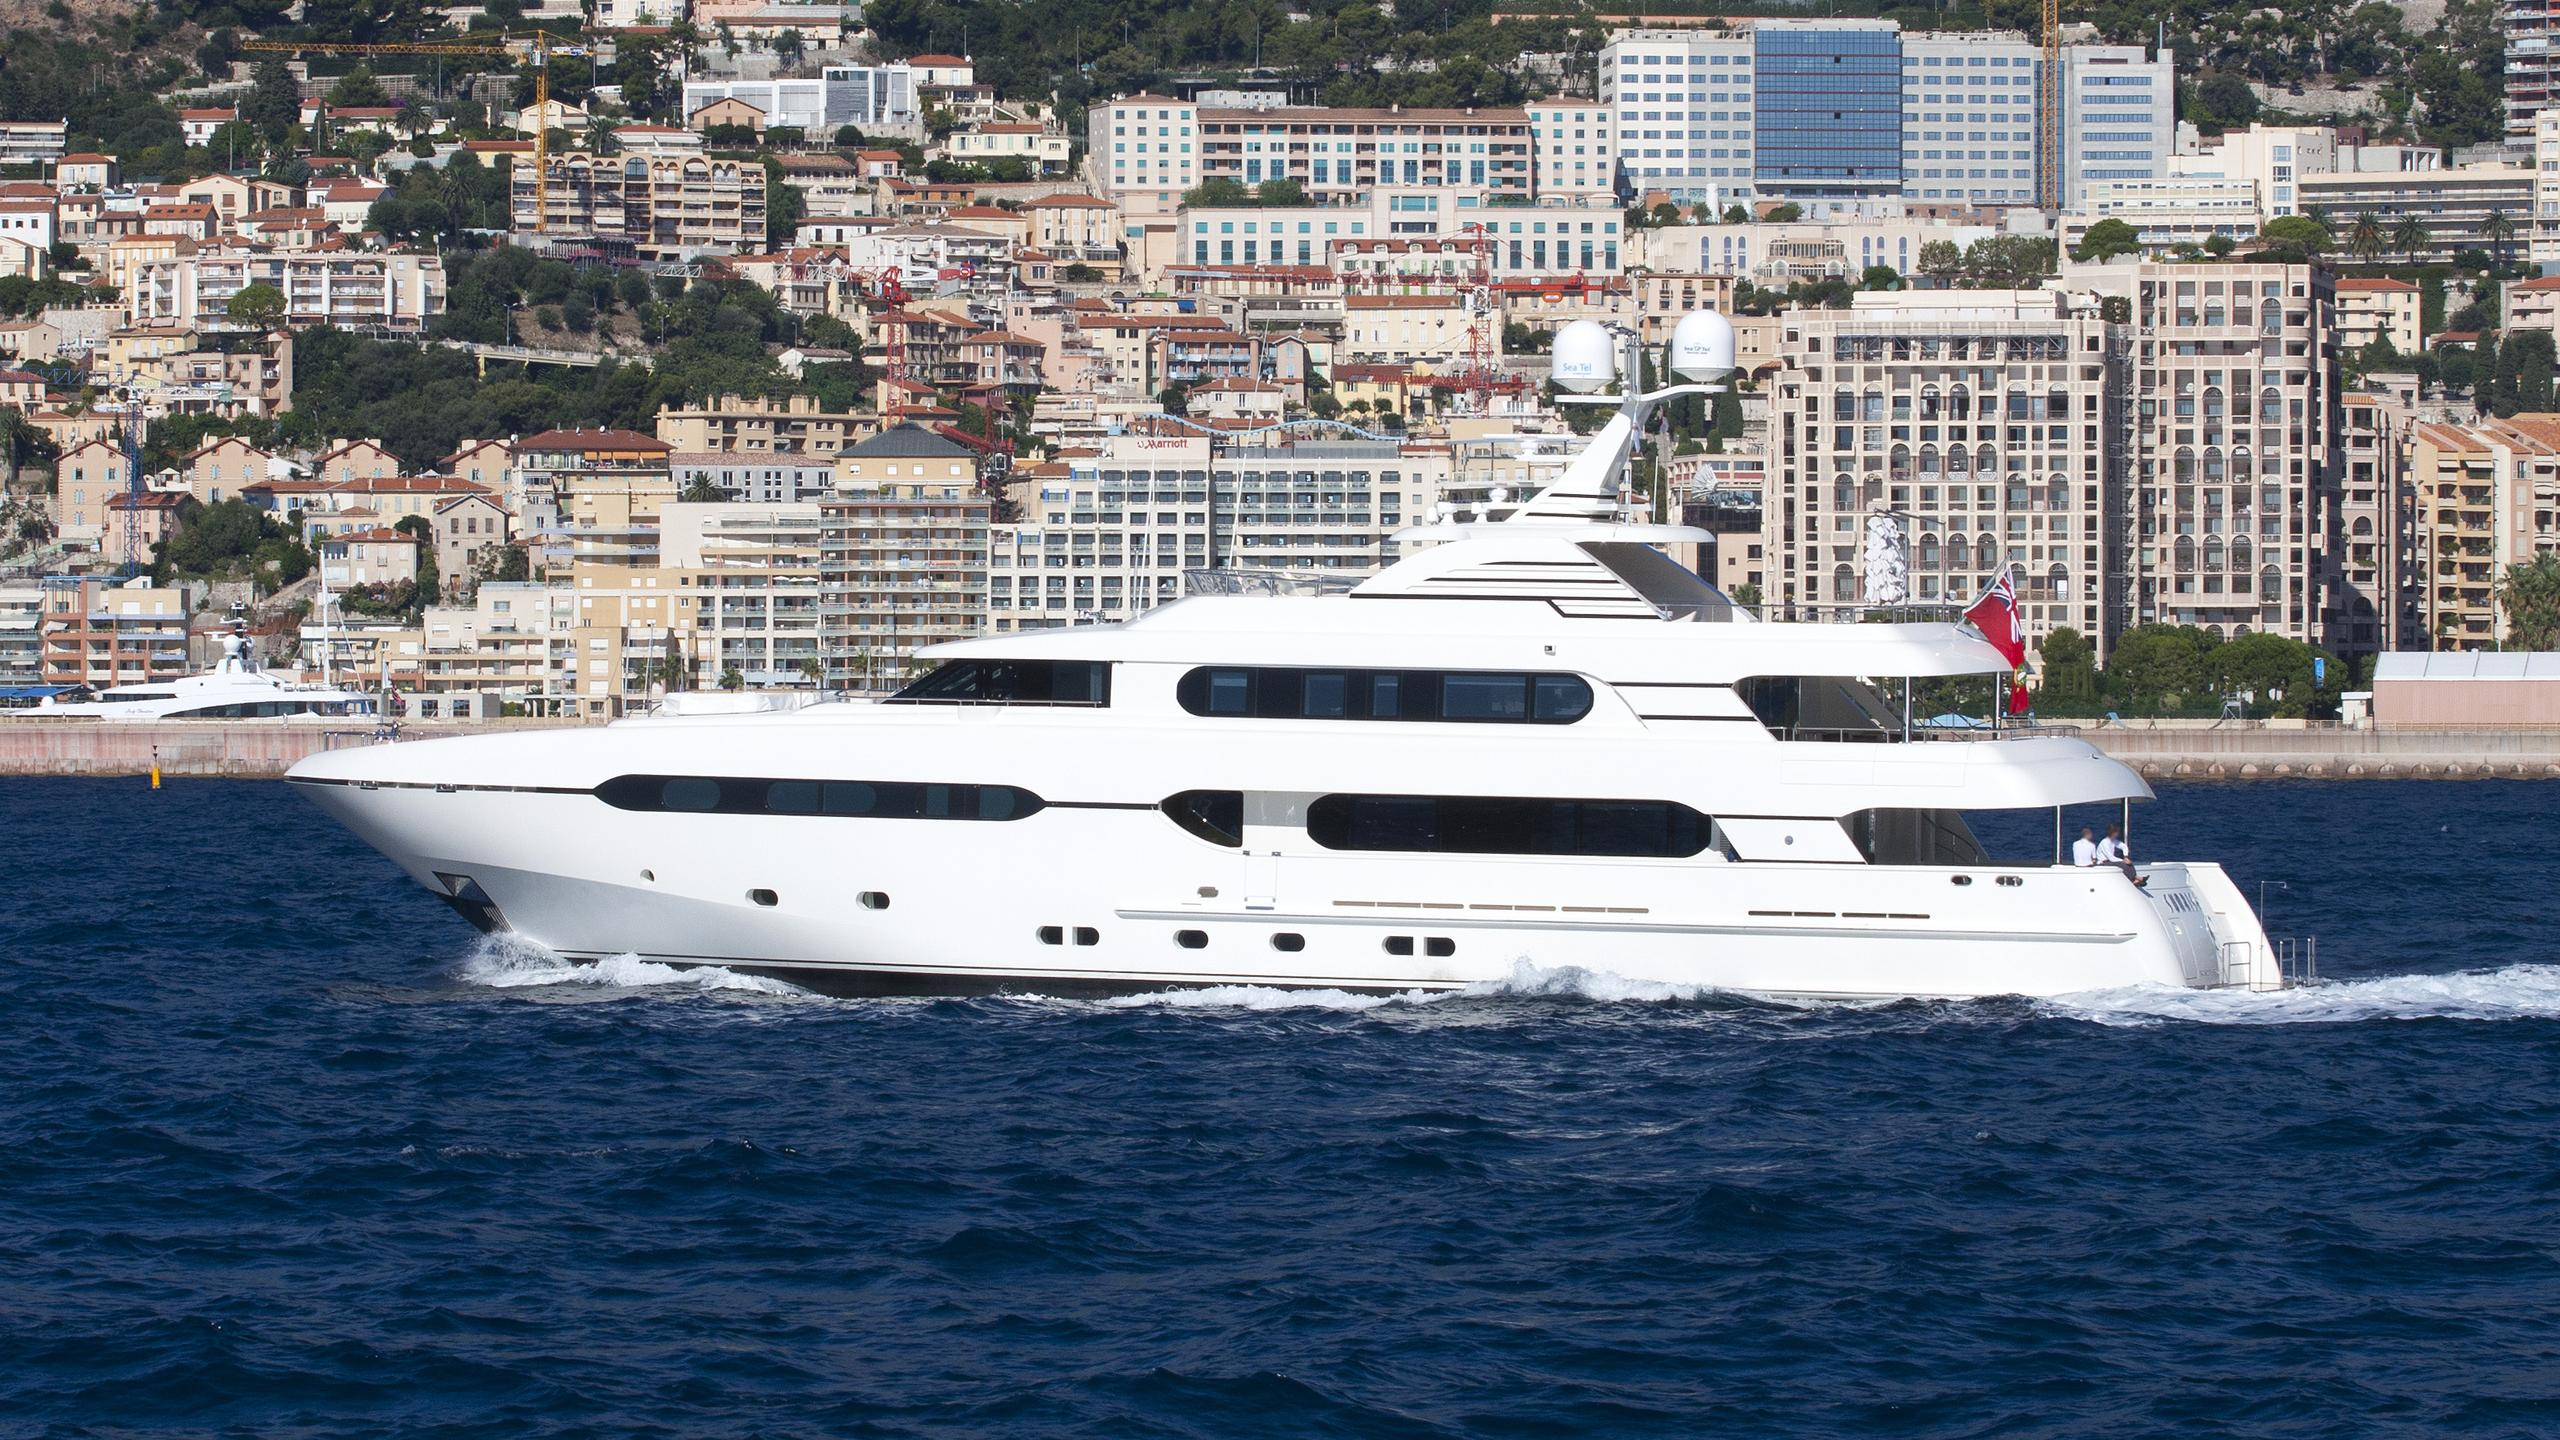 dynasty-motor-yacht-sunrise-45-2009-45m-profile